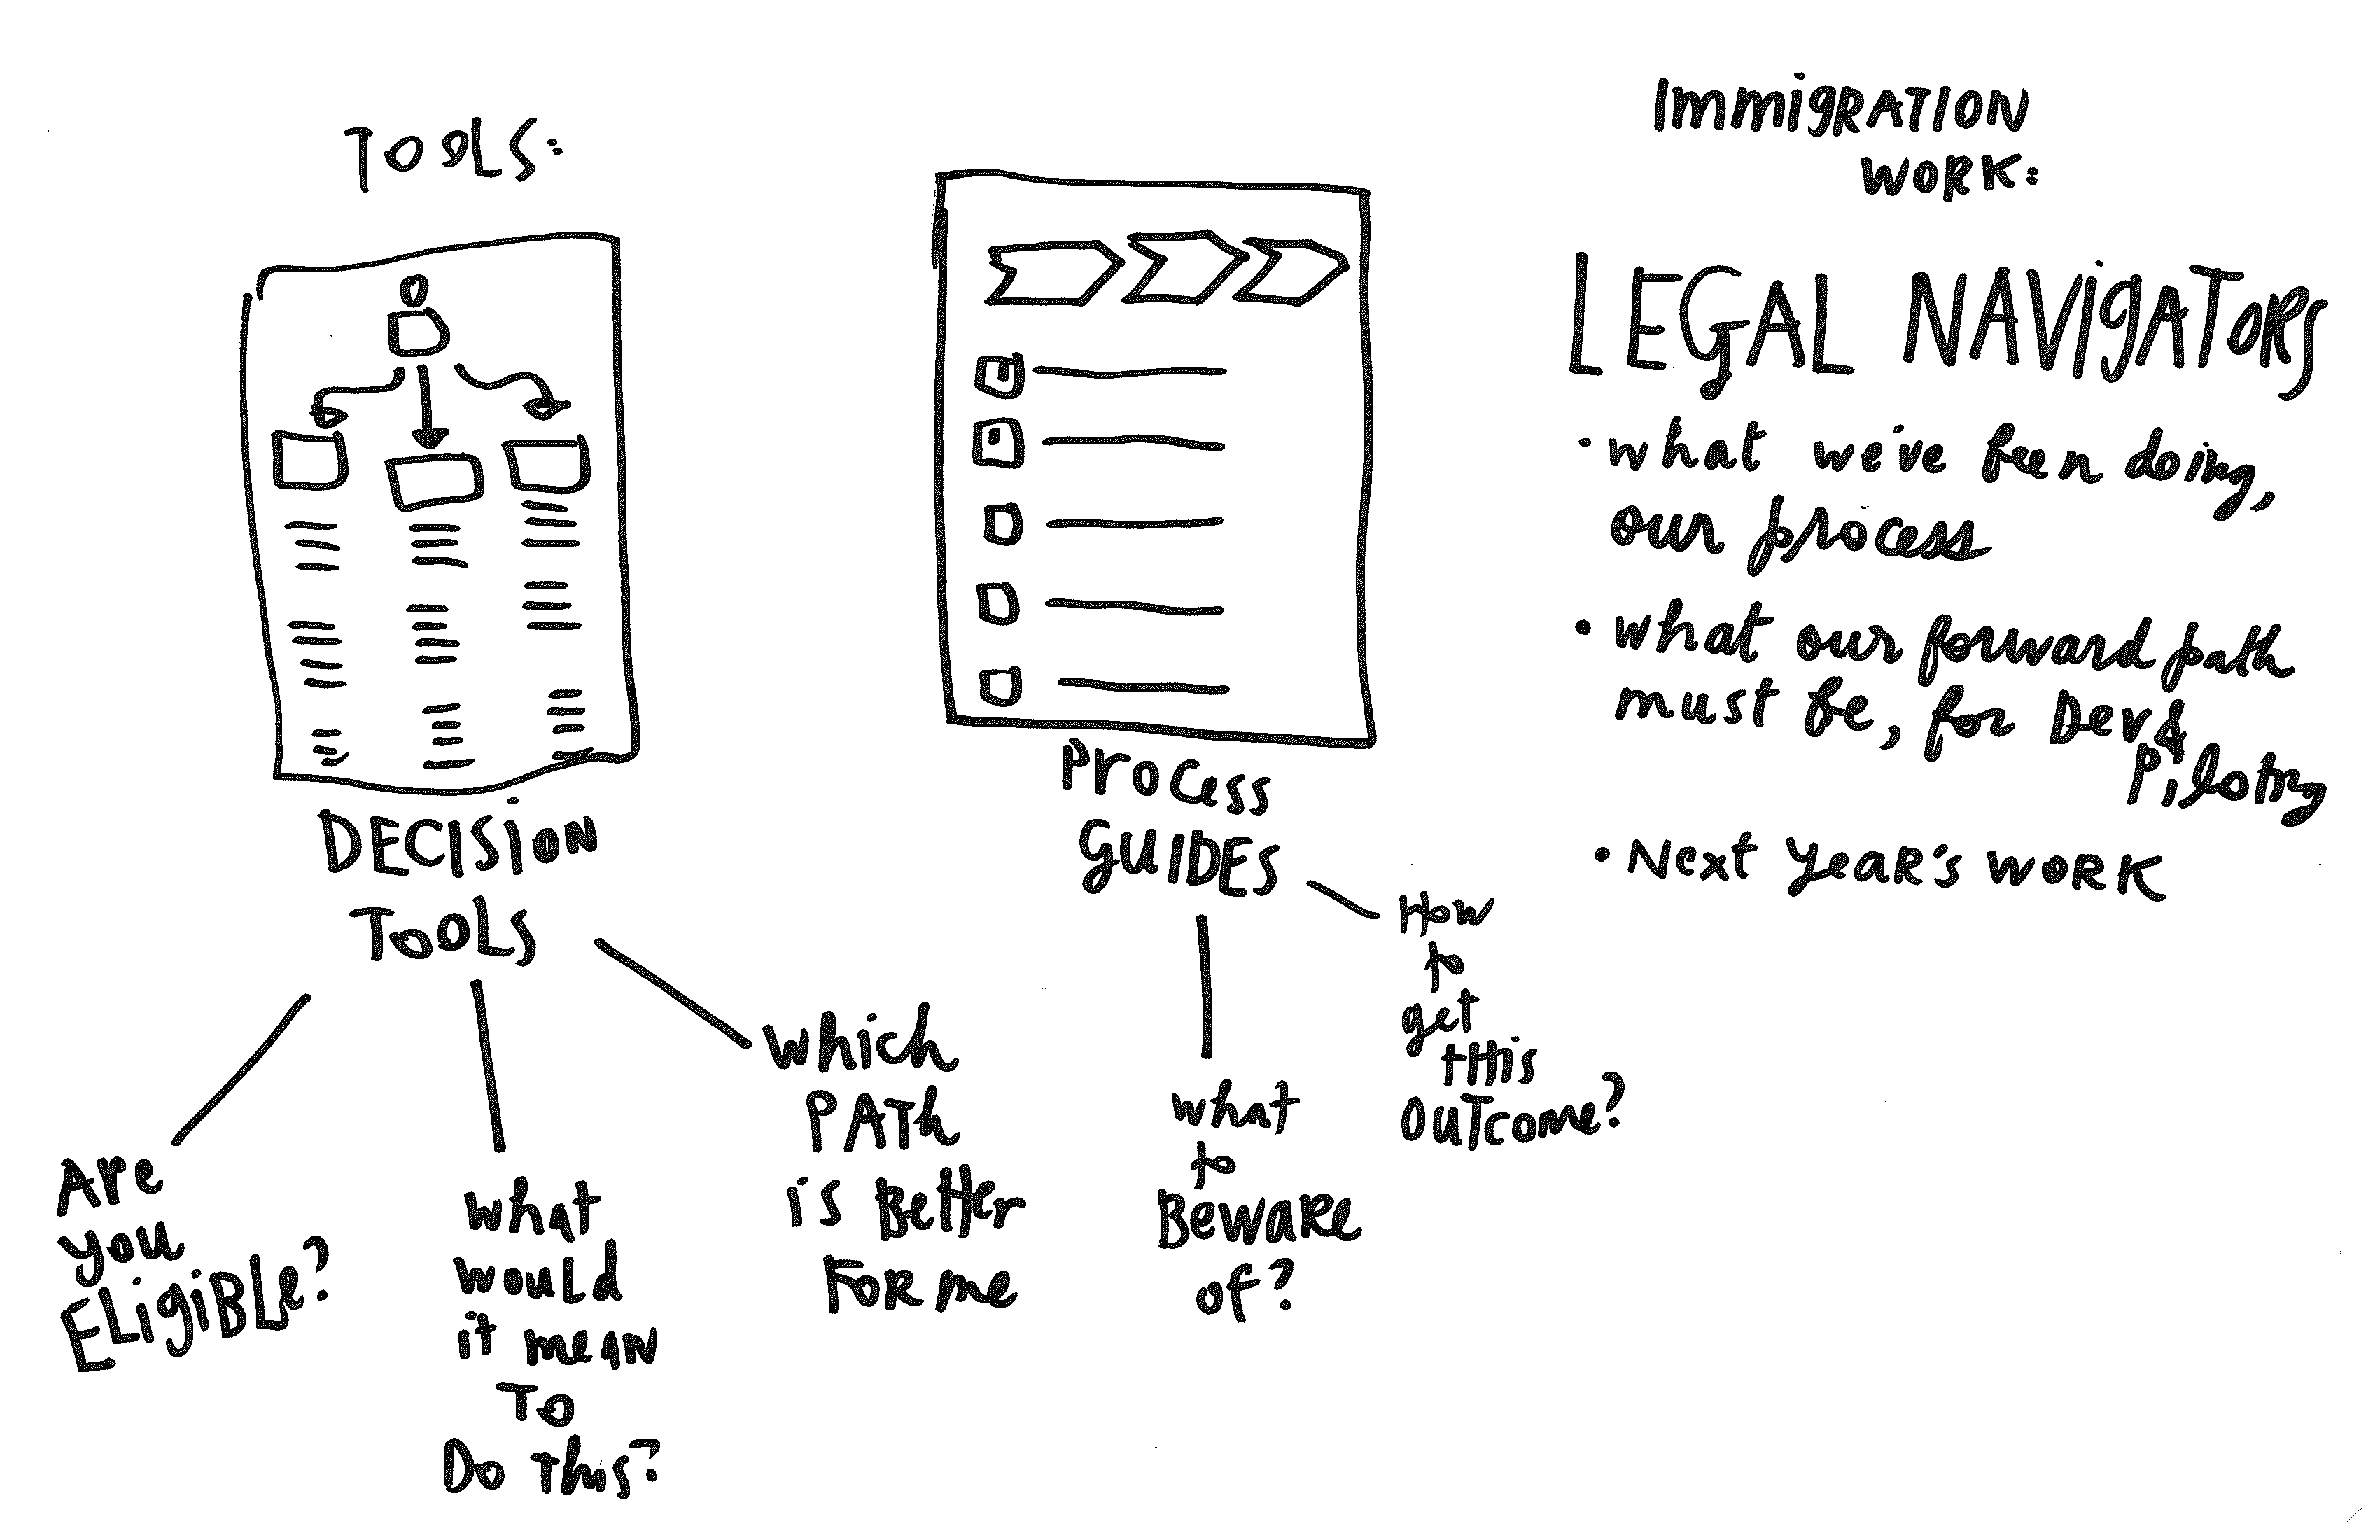 Process Guide - Triage and then guide - Design Process - Legal Navigators